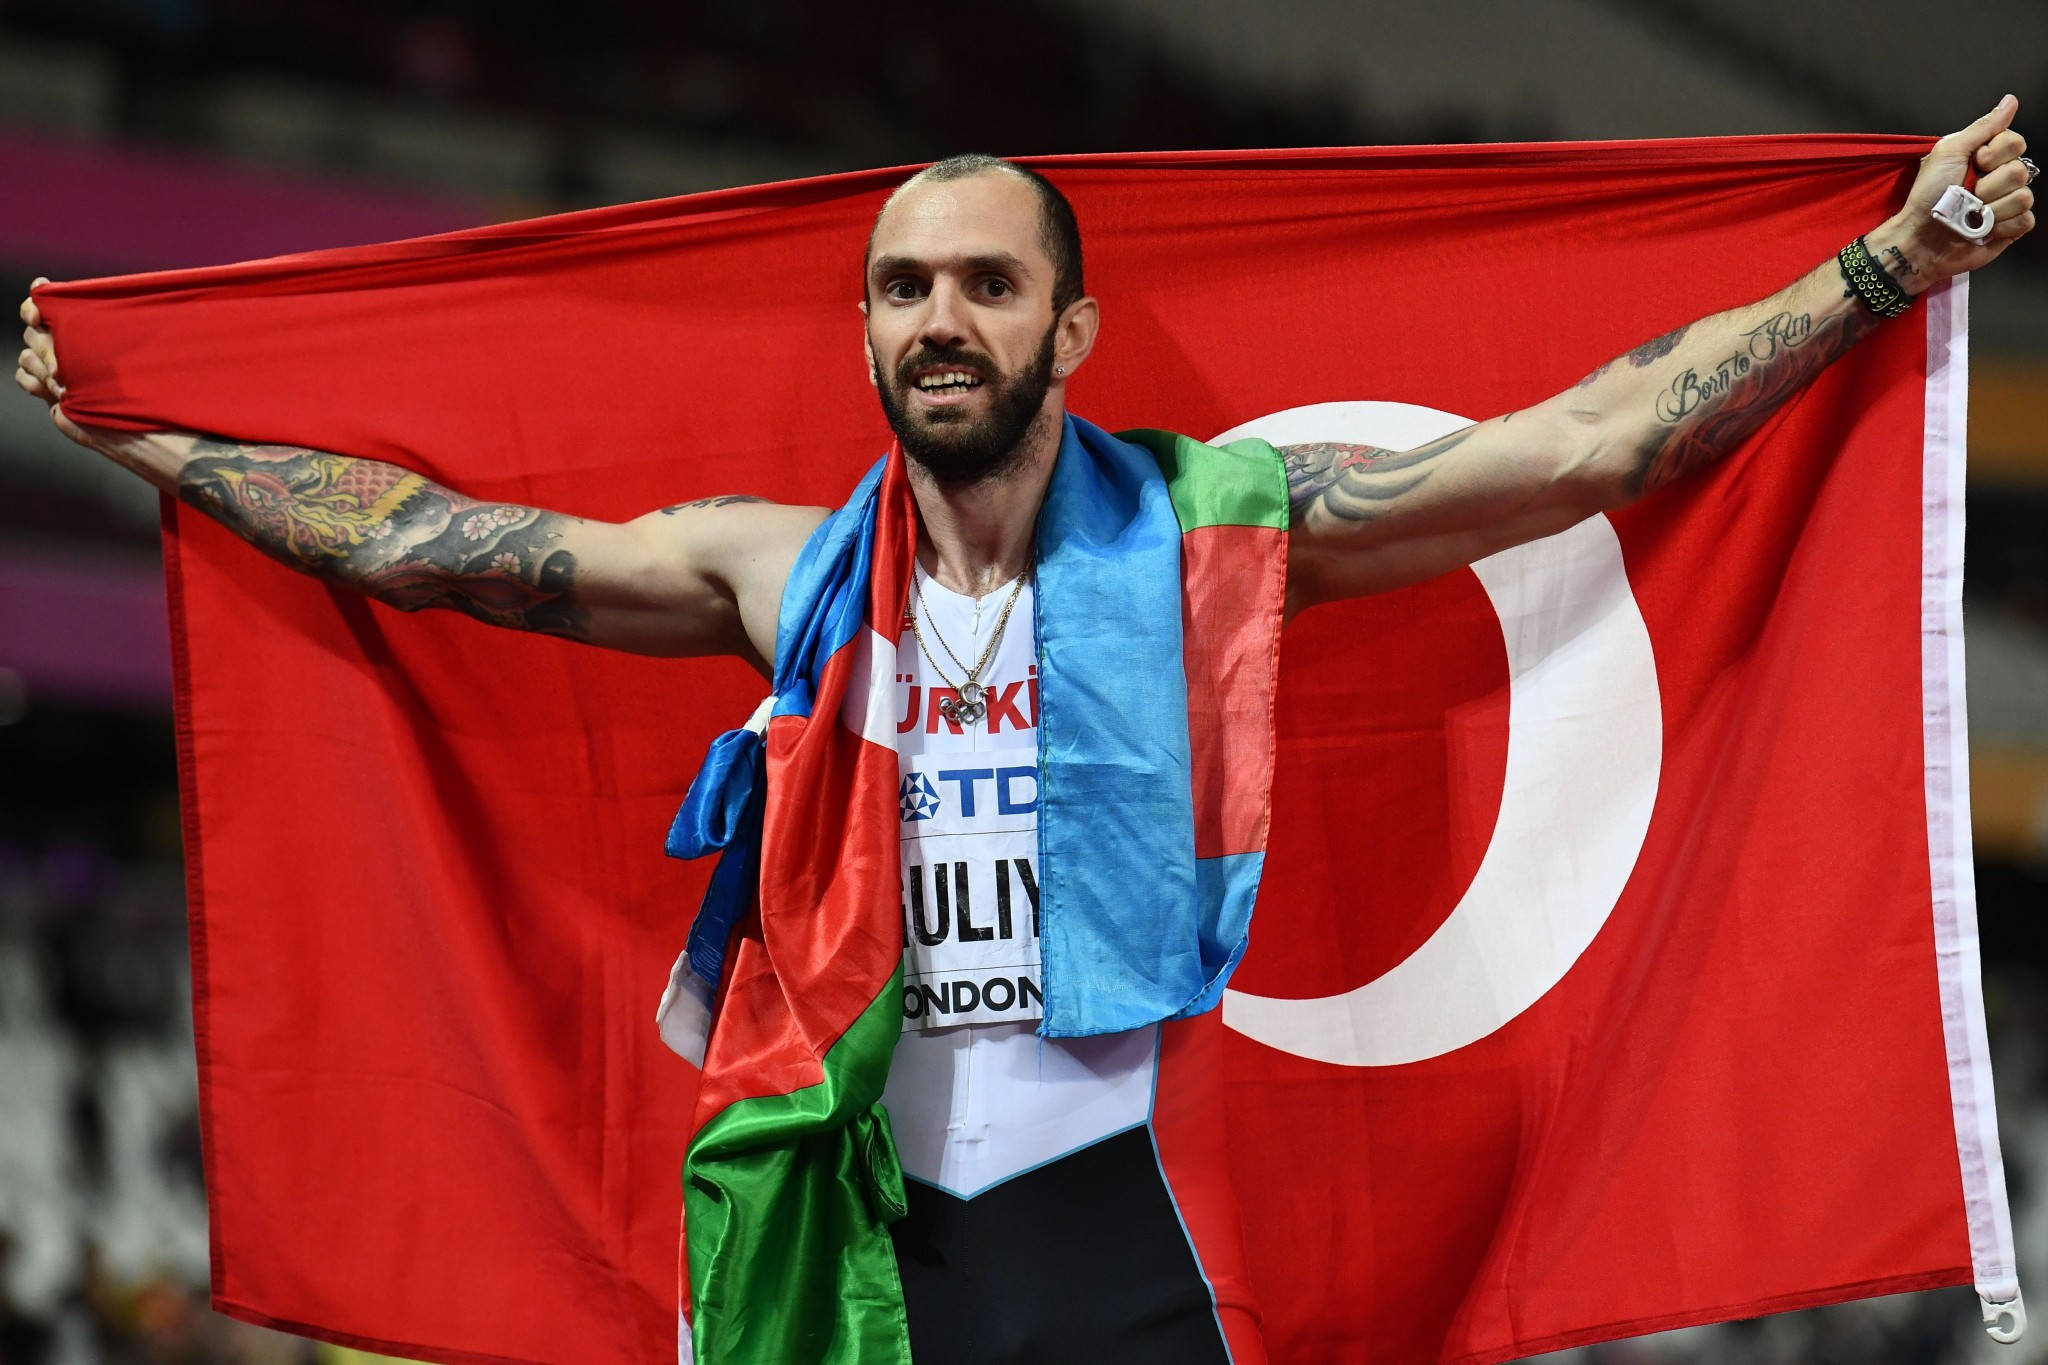 Azerbaijani-born Turkish athlete Ramil Guliyev upstaged the eagerly-anticipated battle between South African Wayde van Niekerk and Isaac Makwala as he sprinted to a shock 200 metres victory ©Getty Images